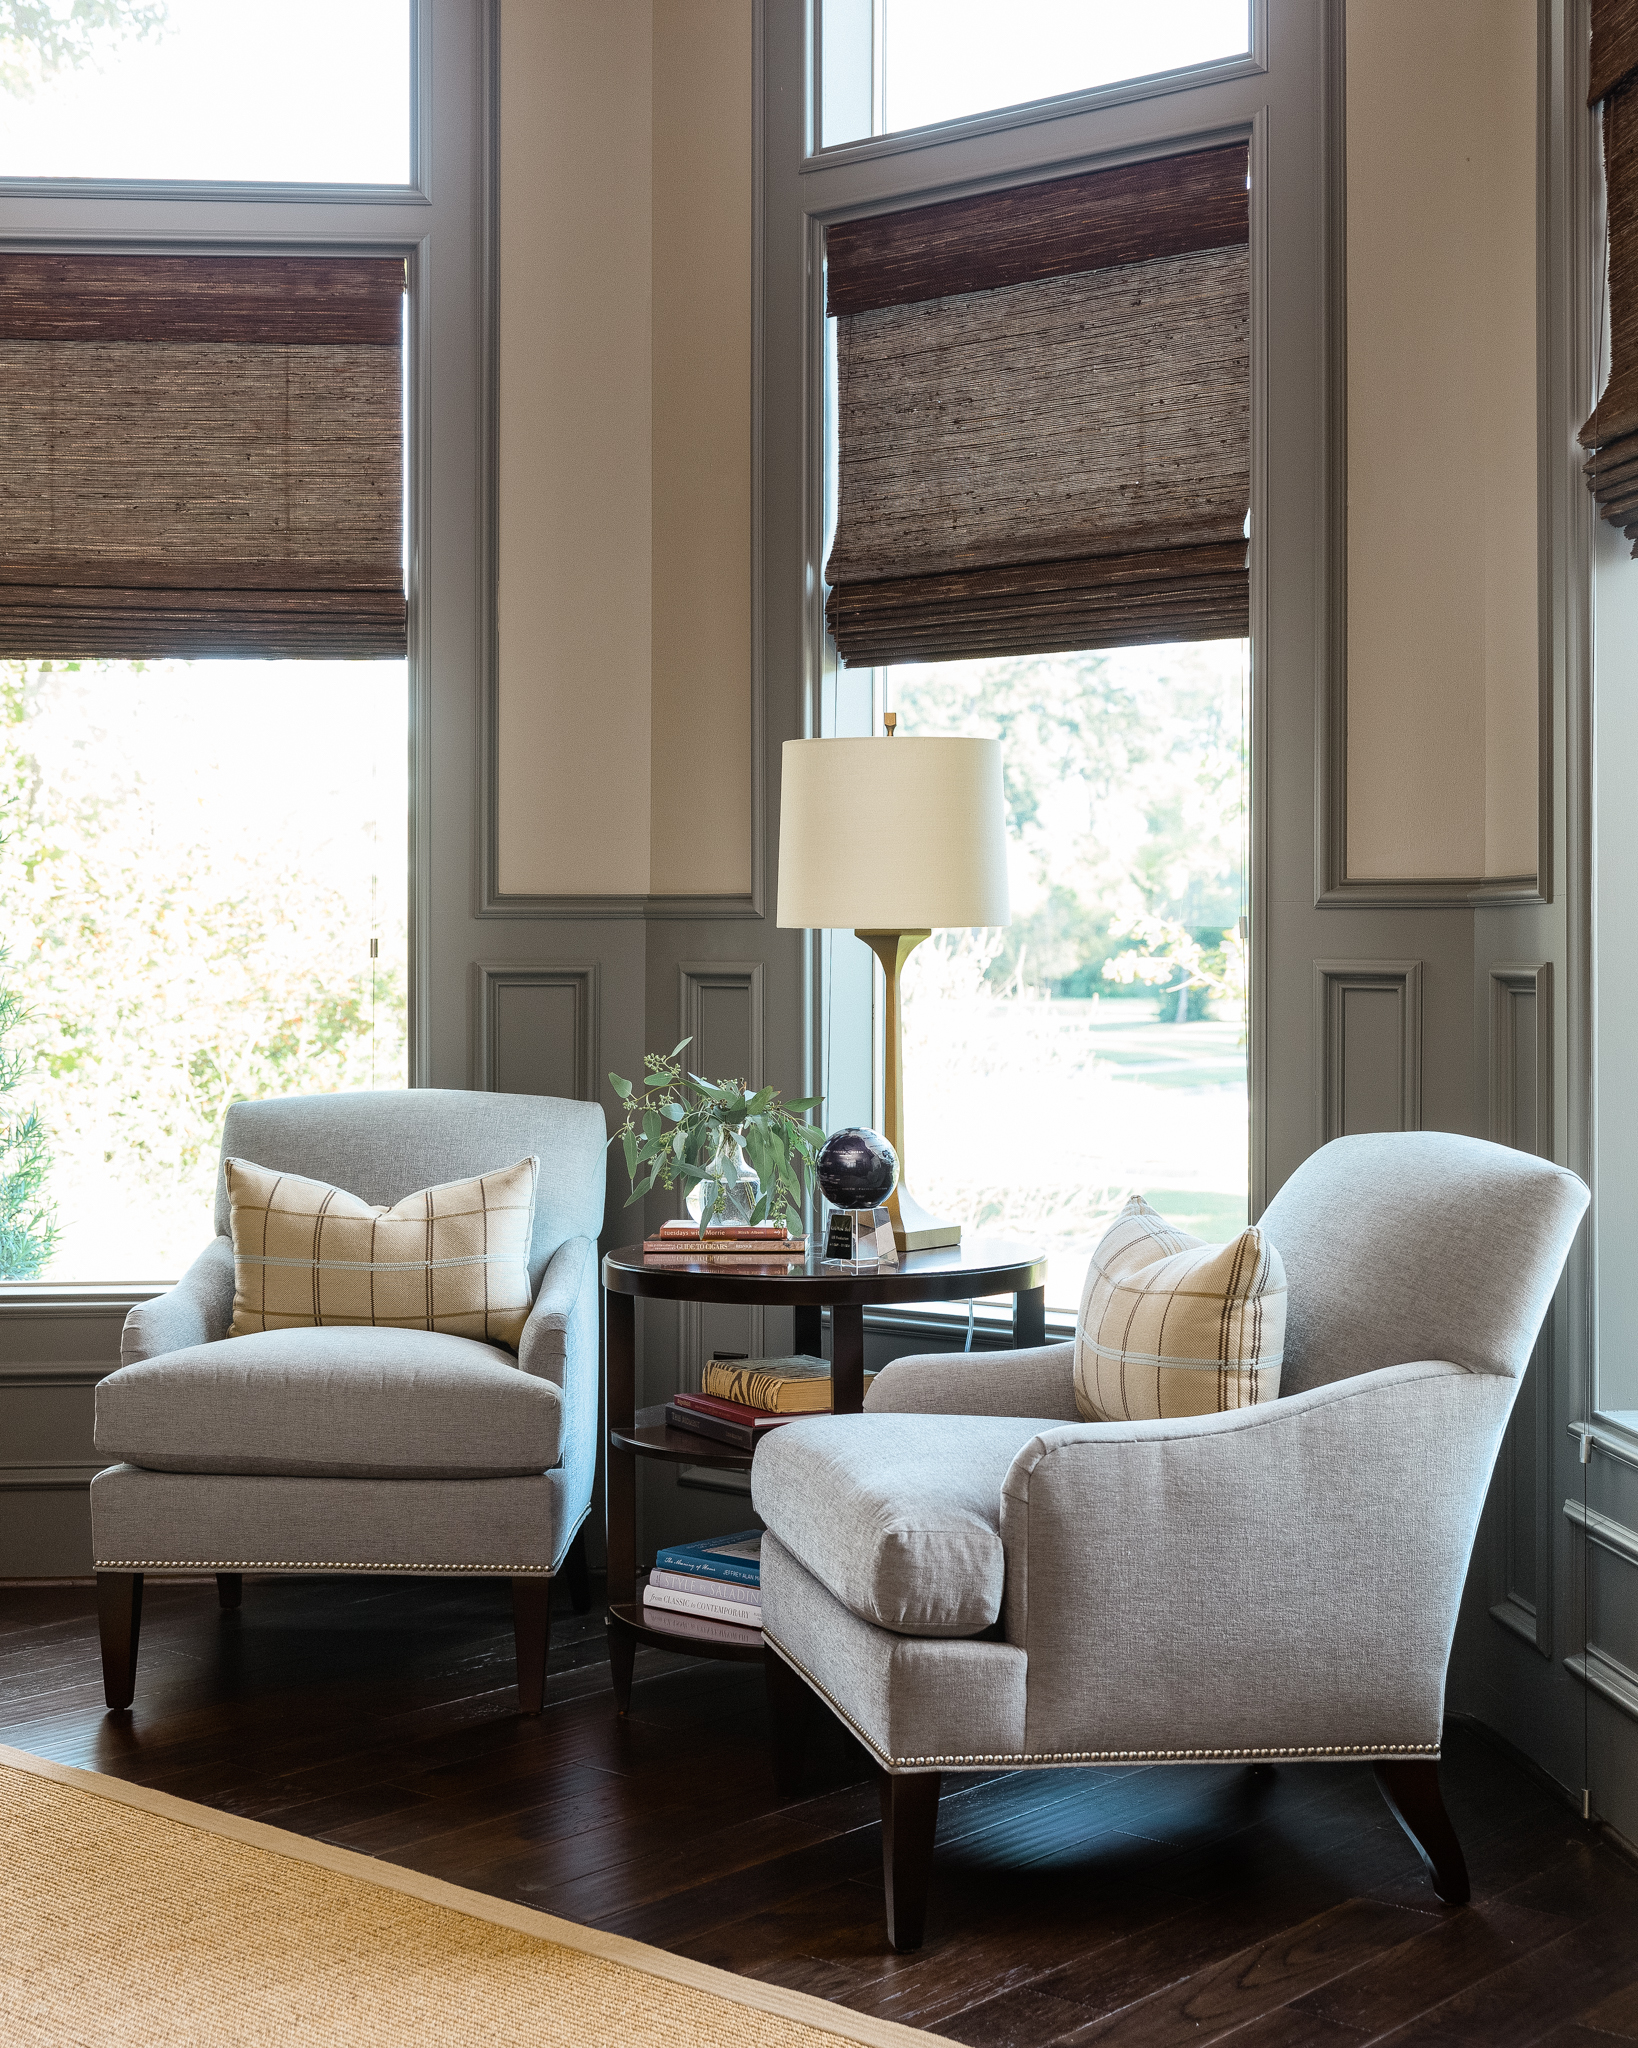 Woven wood shades fit perfectly in this home office corner, designed by Carla Aston | Colleen Scott, Photographer #windowtreatment #wovenwoodshade